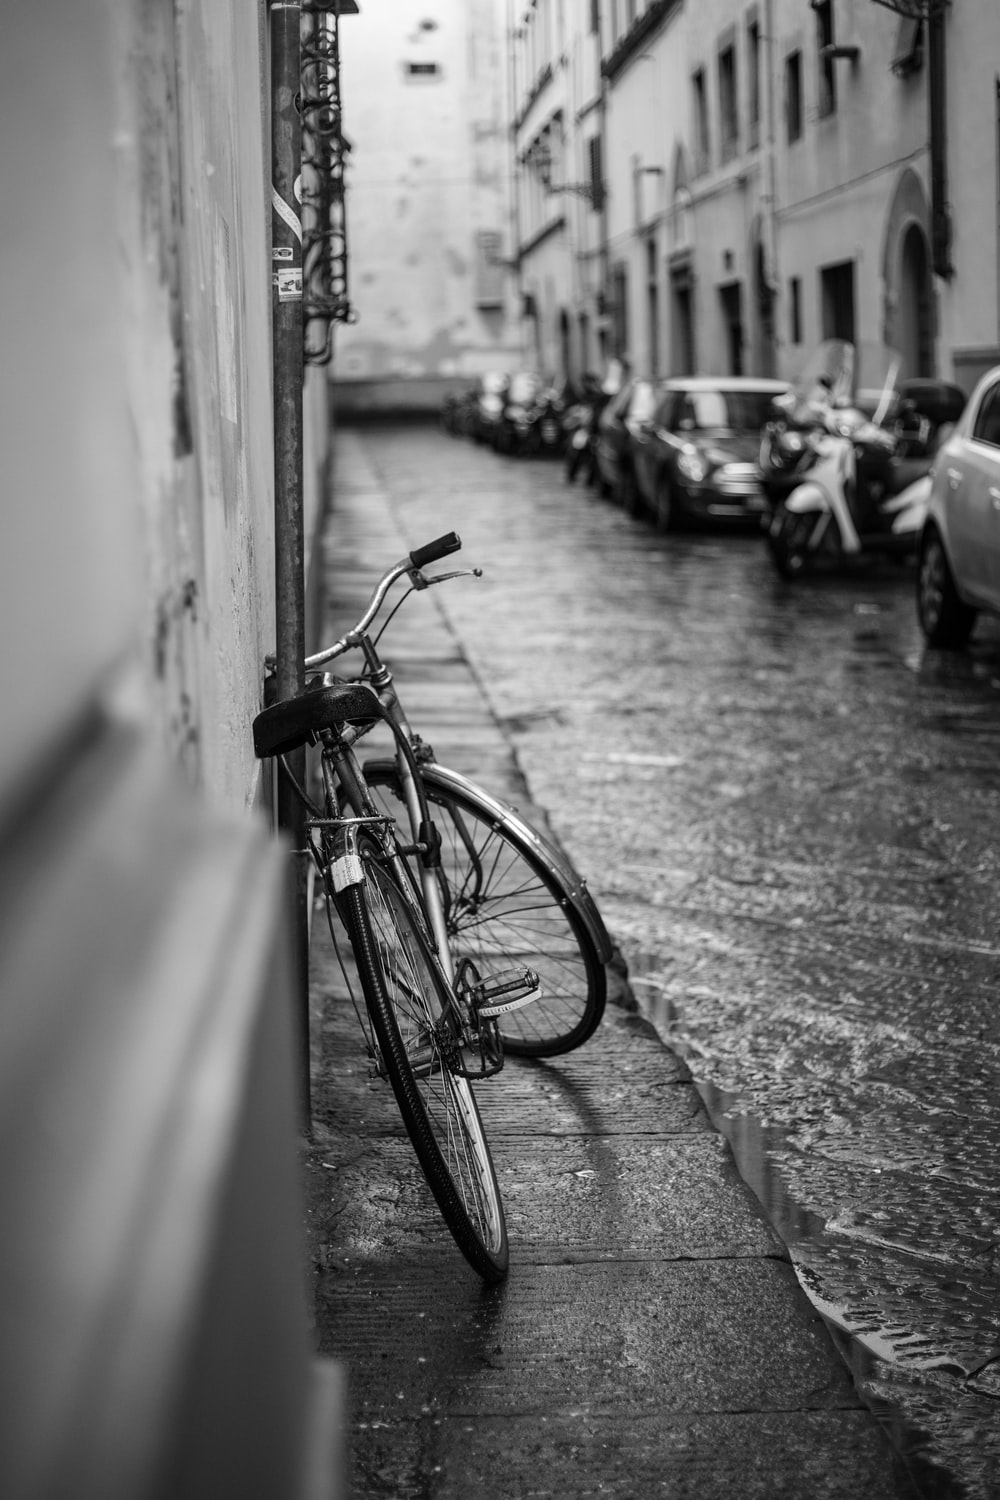 Grayscale photo of bike on wall